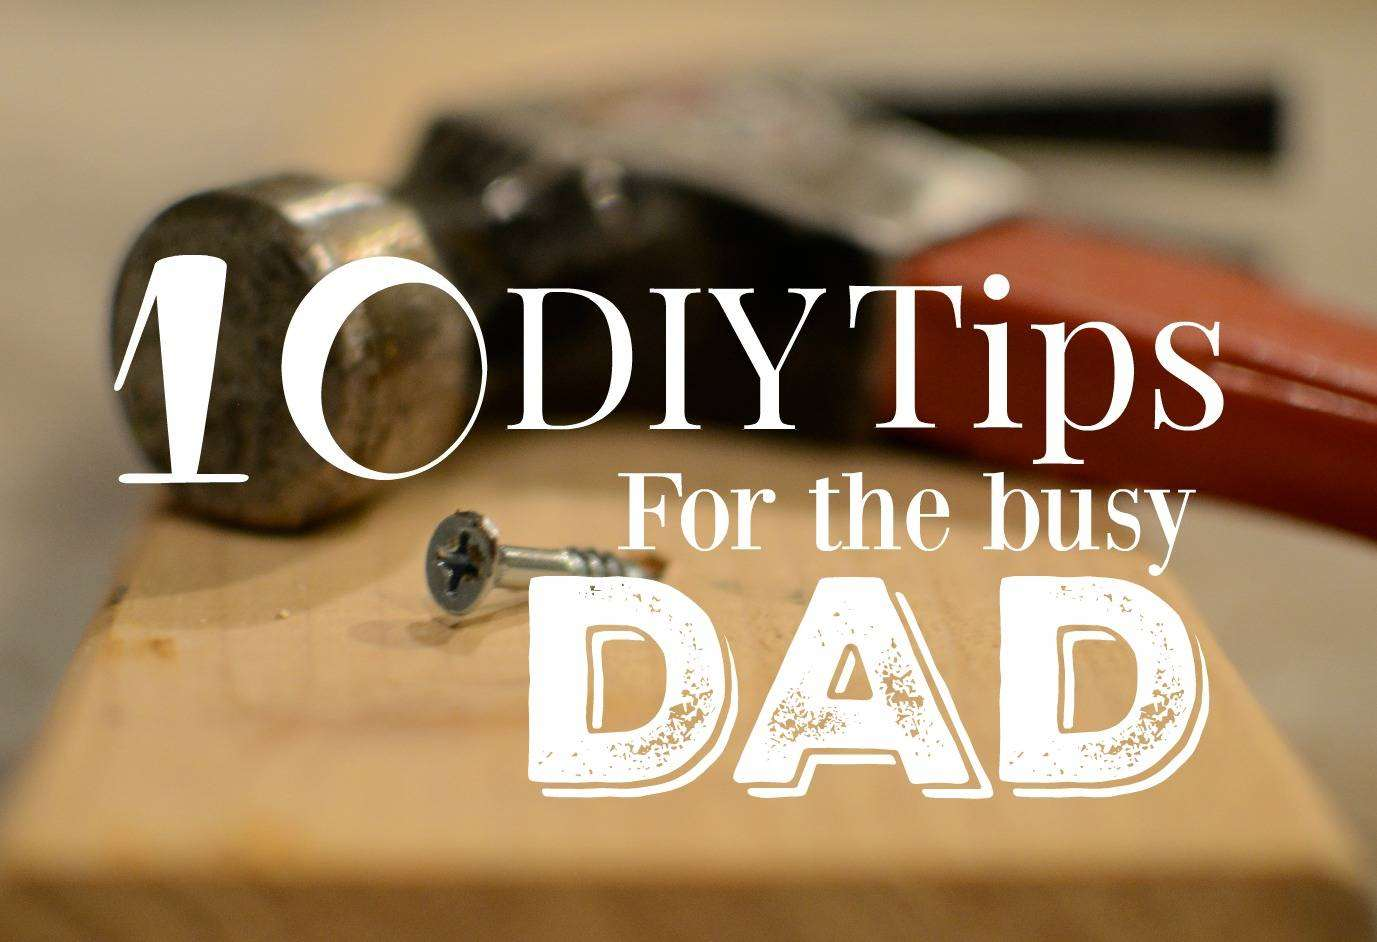 10 DIY Tips for the Busy Dad... Who Hates DIY!, DIY tips for the busy dad FT%, new-dad%